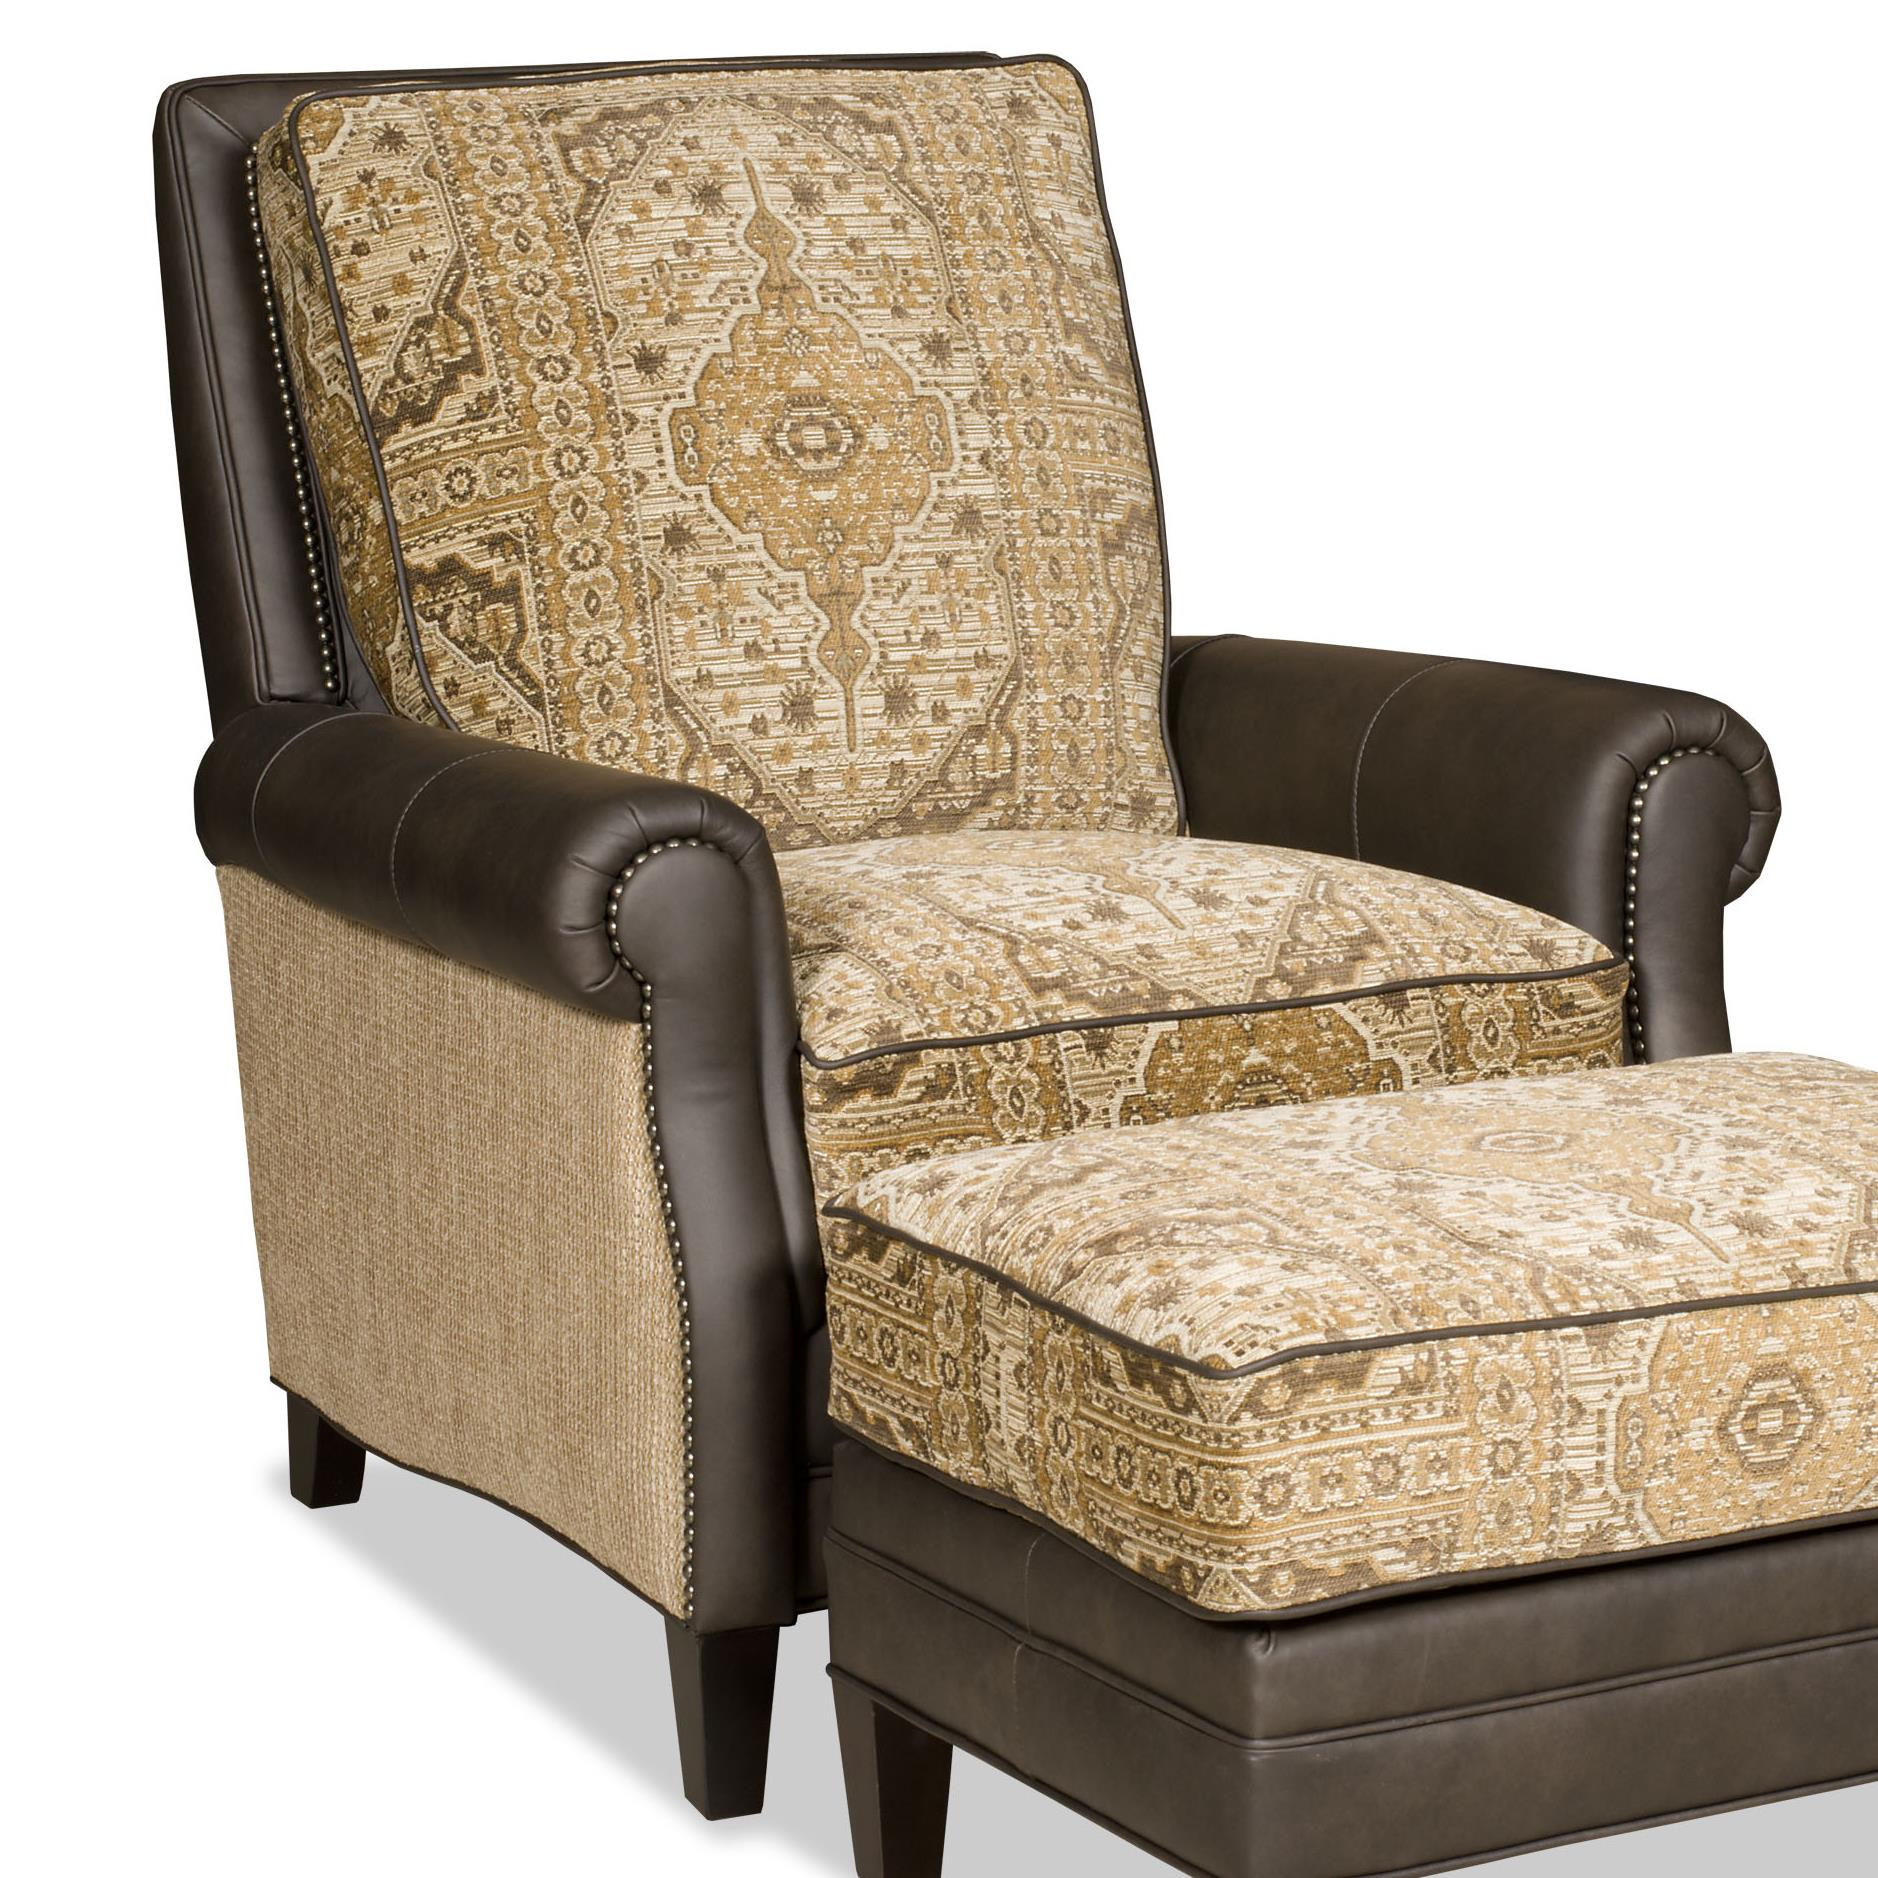 Pleasing Bradington Young Aiden Transitional Tilt Back Recliner With Dailytribune Chair Design For Home Dailytribuneorg